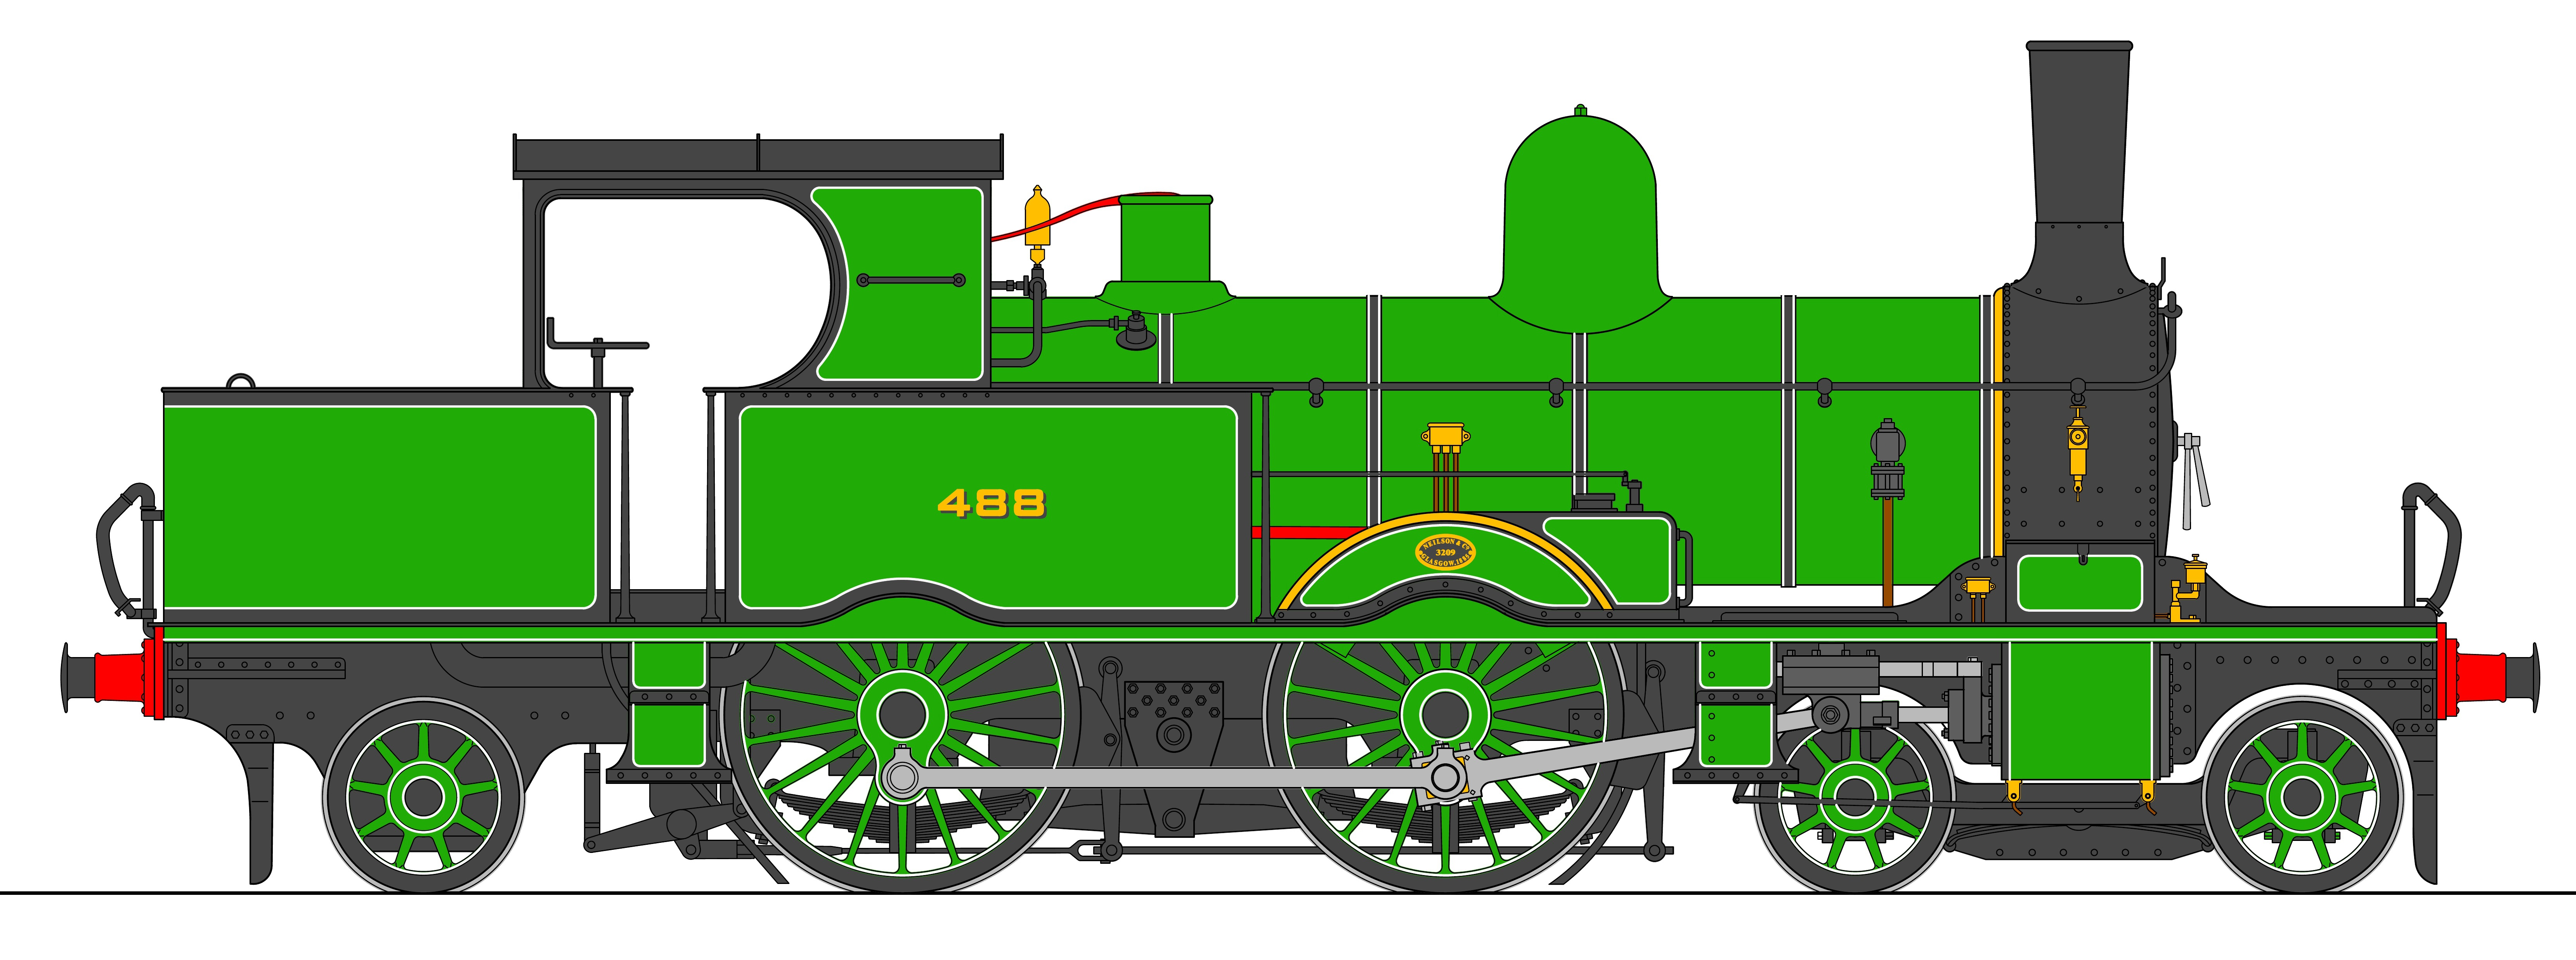 A-LSWR Green-side